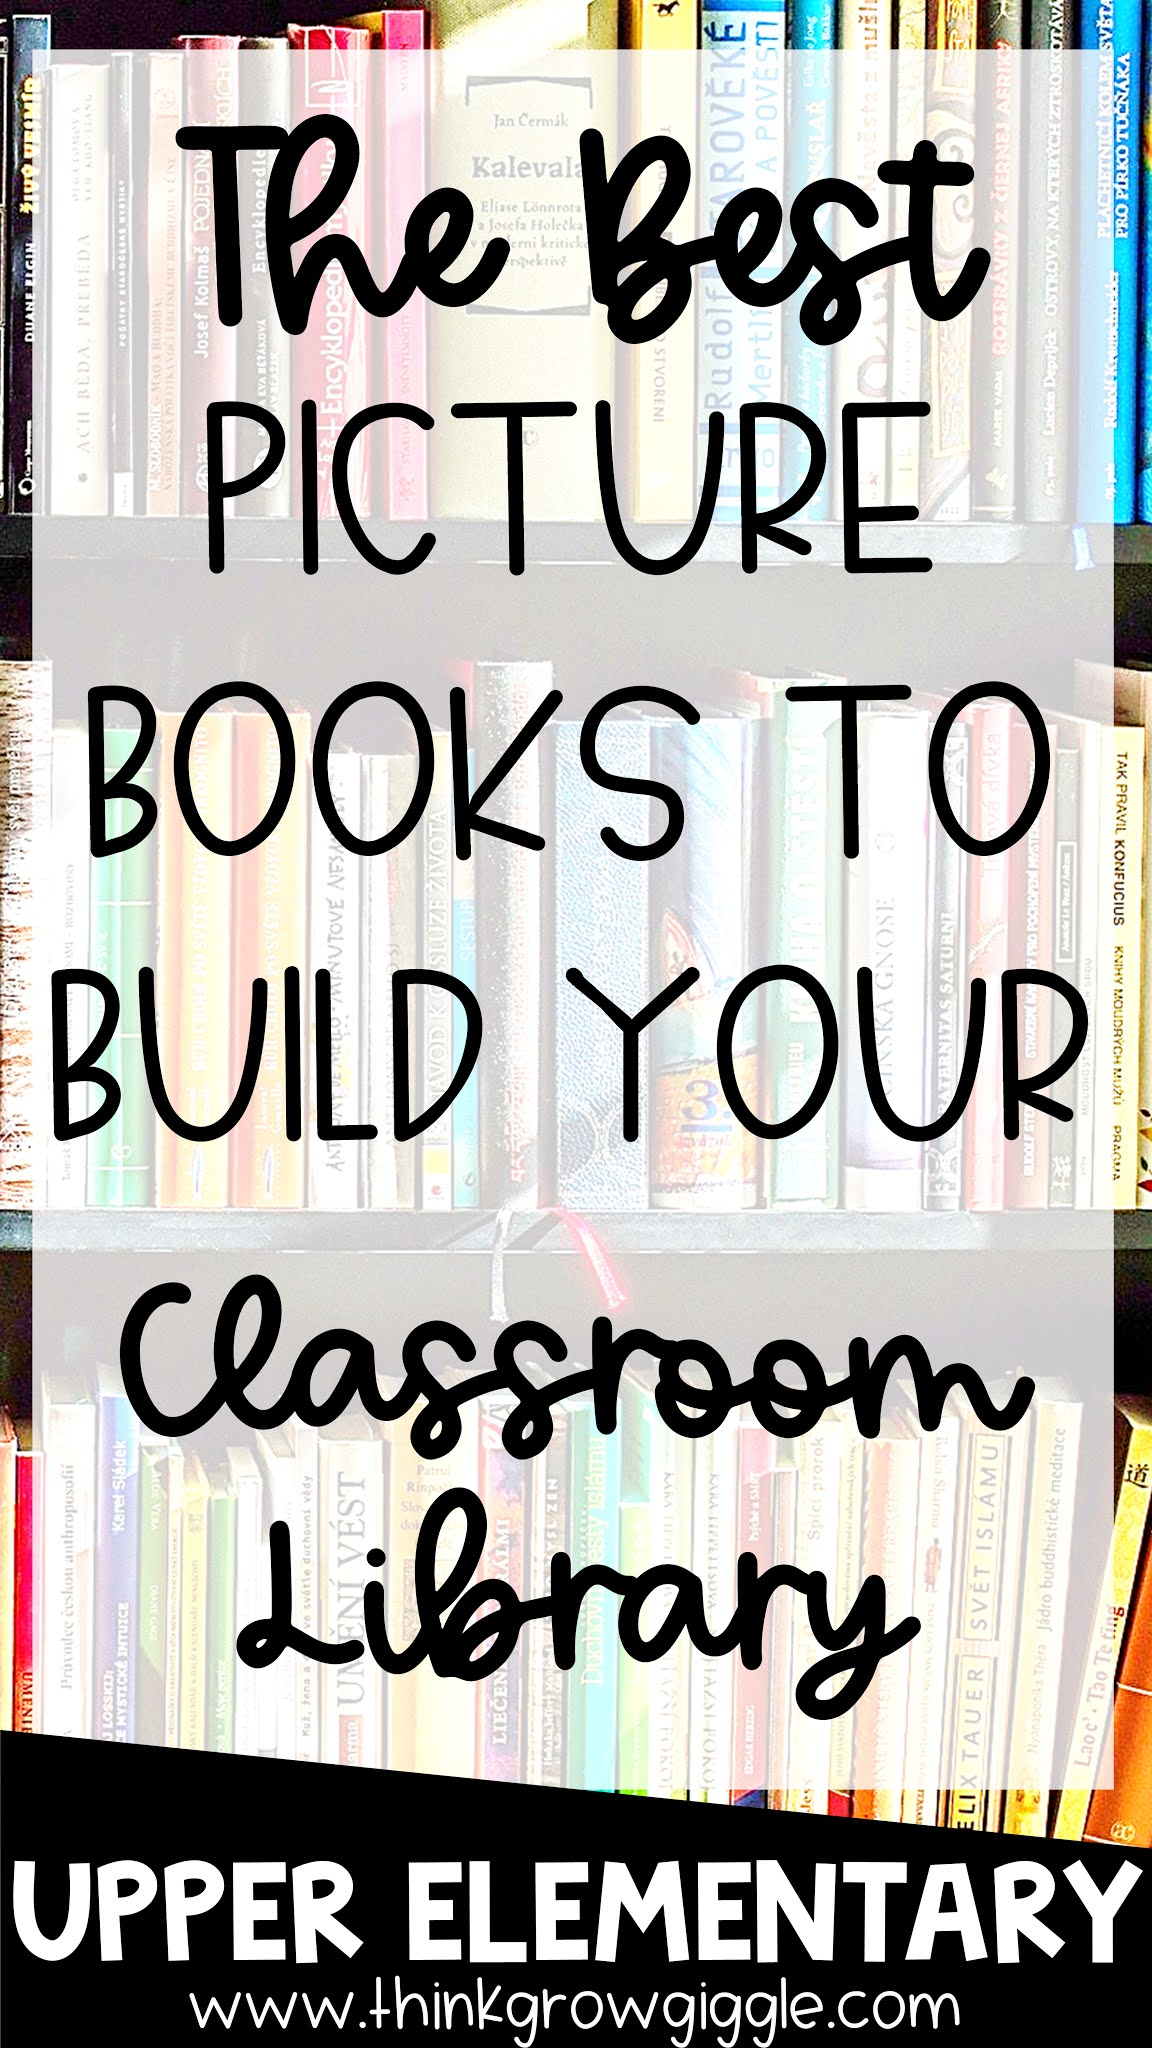 Must Have Picture Books to Build Your Classroom Library